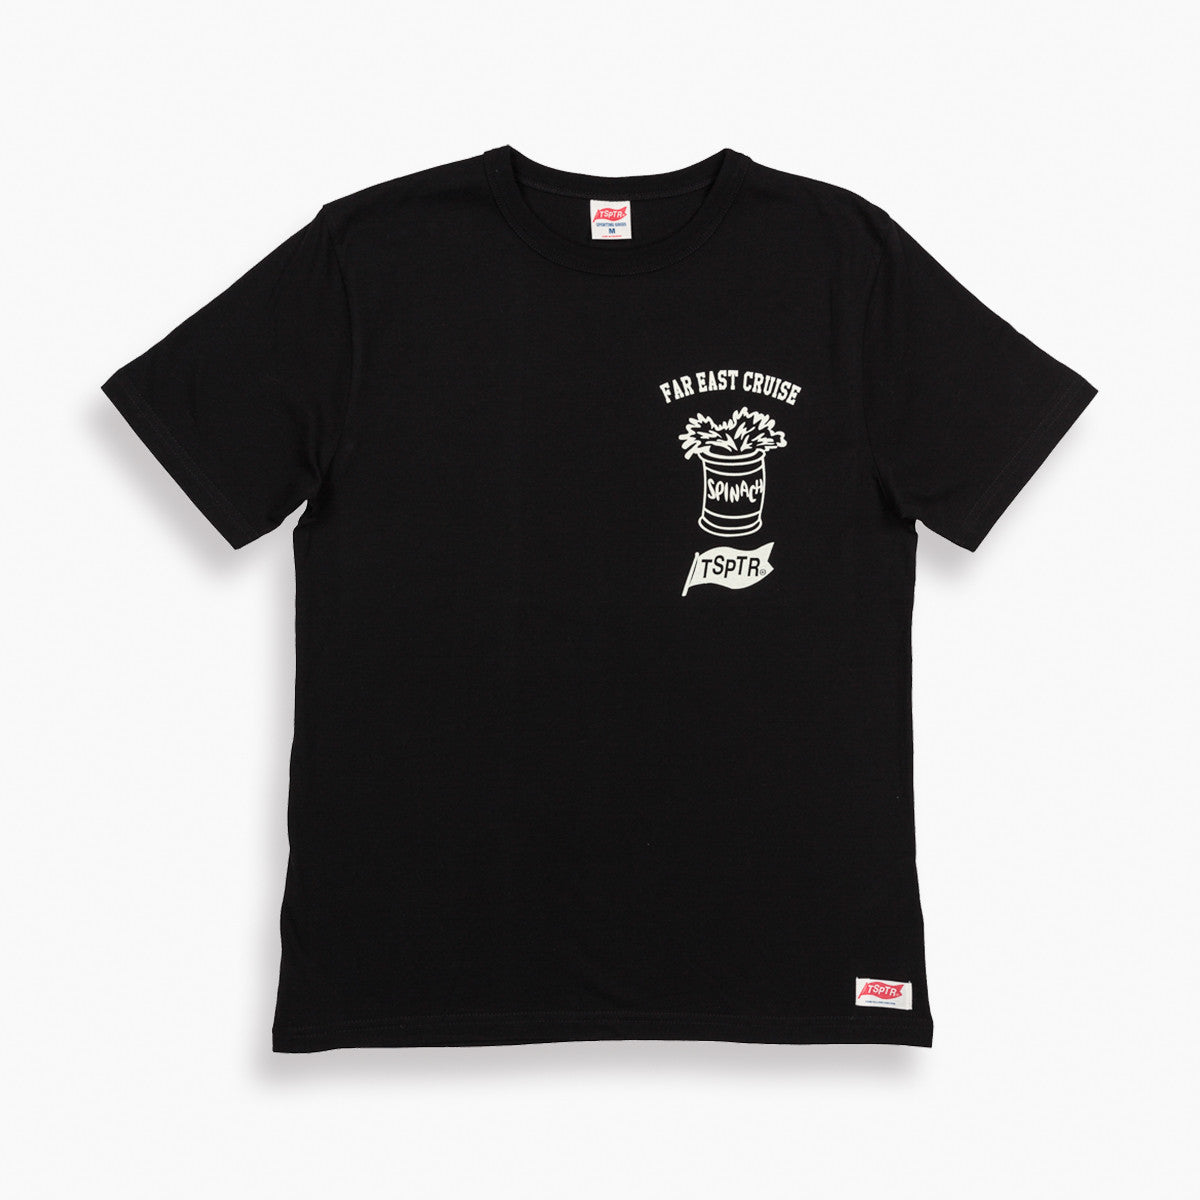 Popeye Far East Cruise Tee